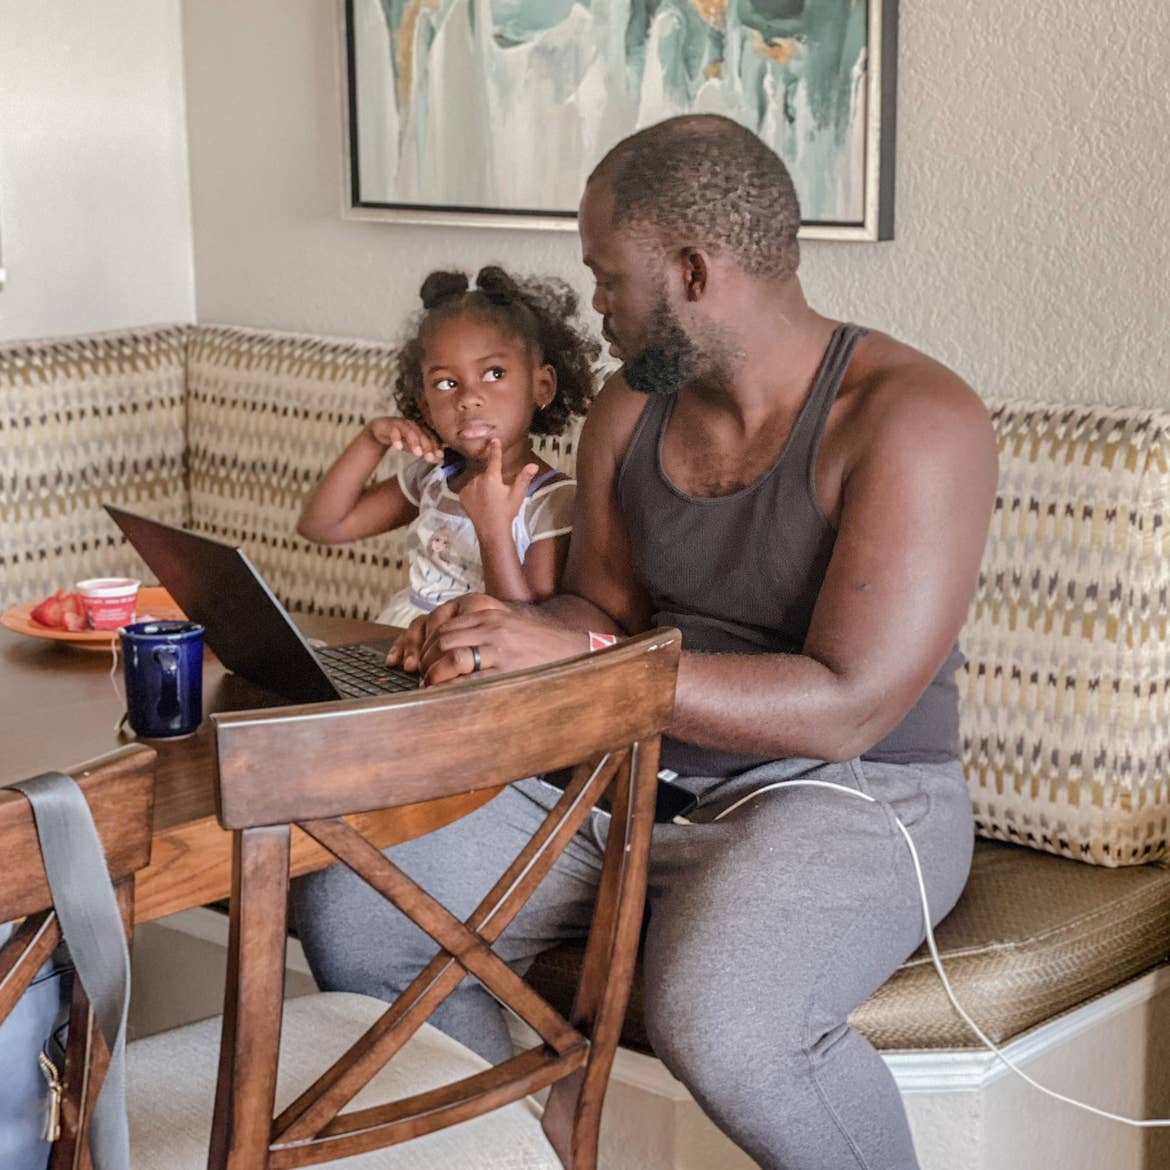 Author, Kimberly Gelin's daughter (left), sits on her dad's (right) lap at the dining table in our Villa at Orange Lake Resort in Florida with her laptop for virtual learning.